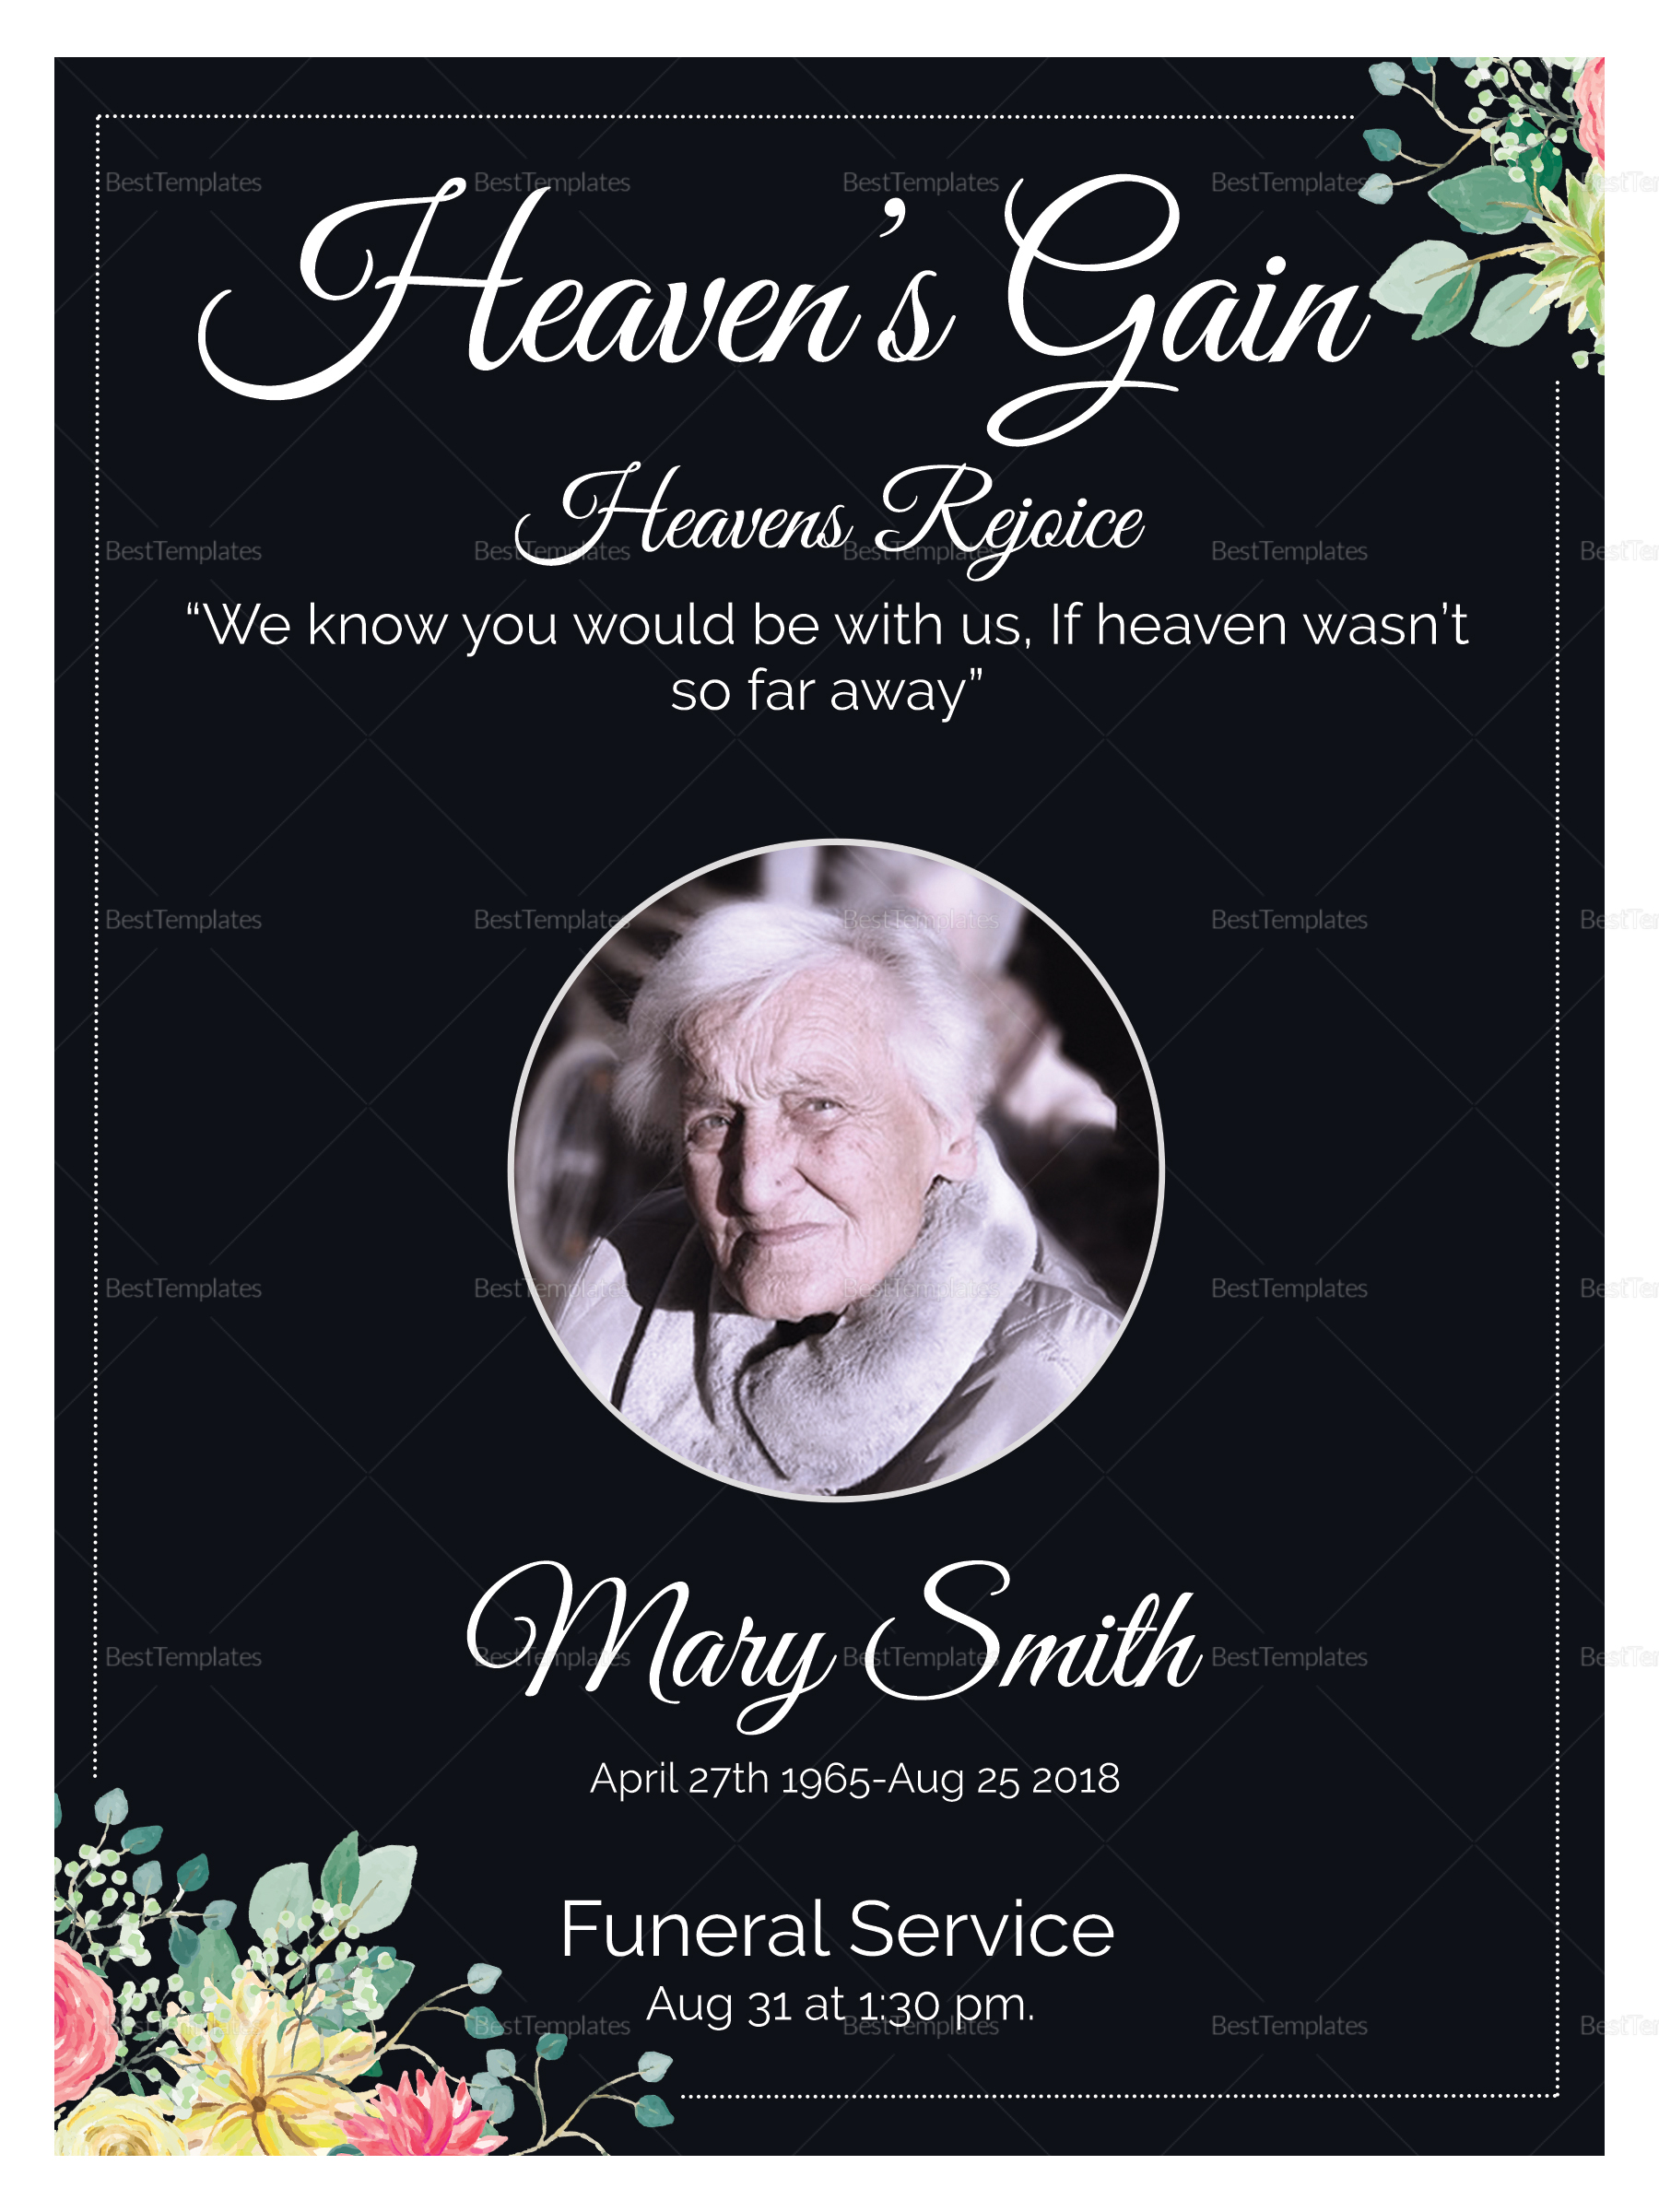 Eulogy Funeral Invitation Card Design